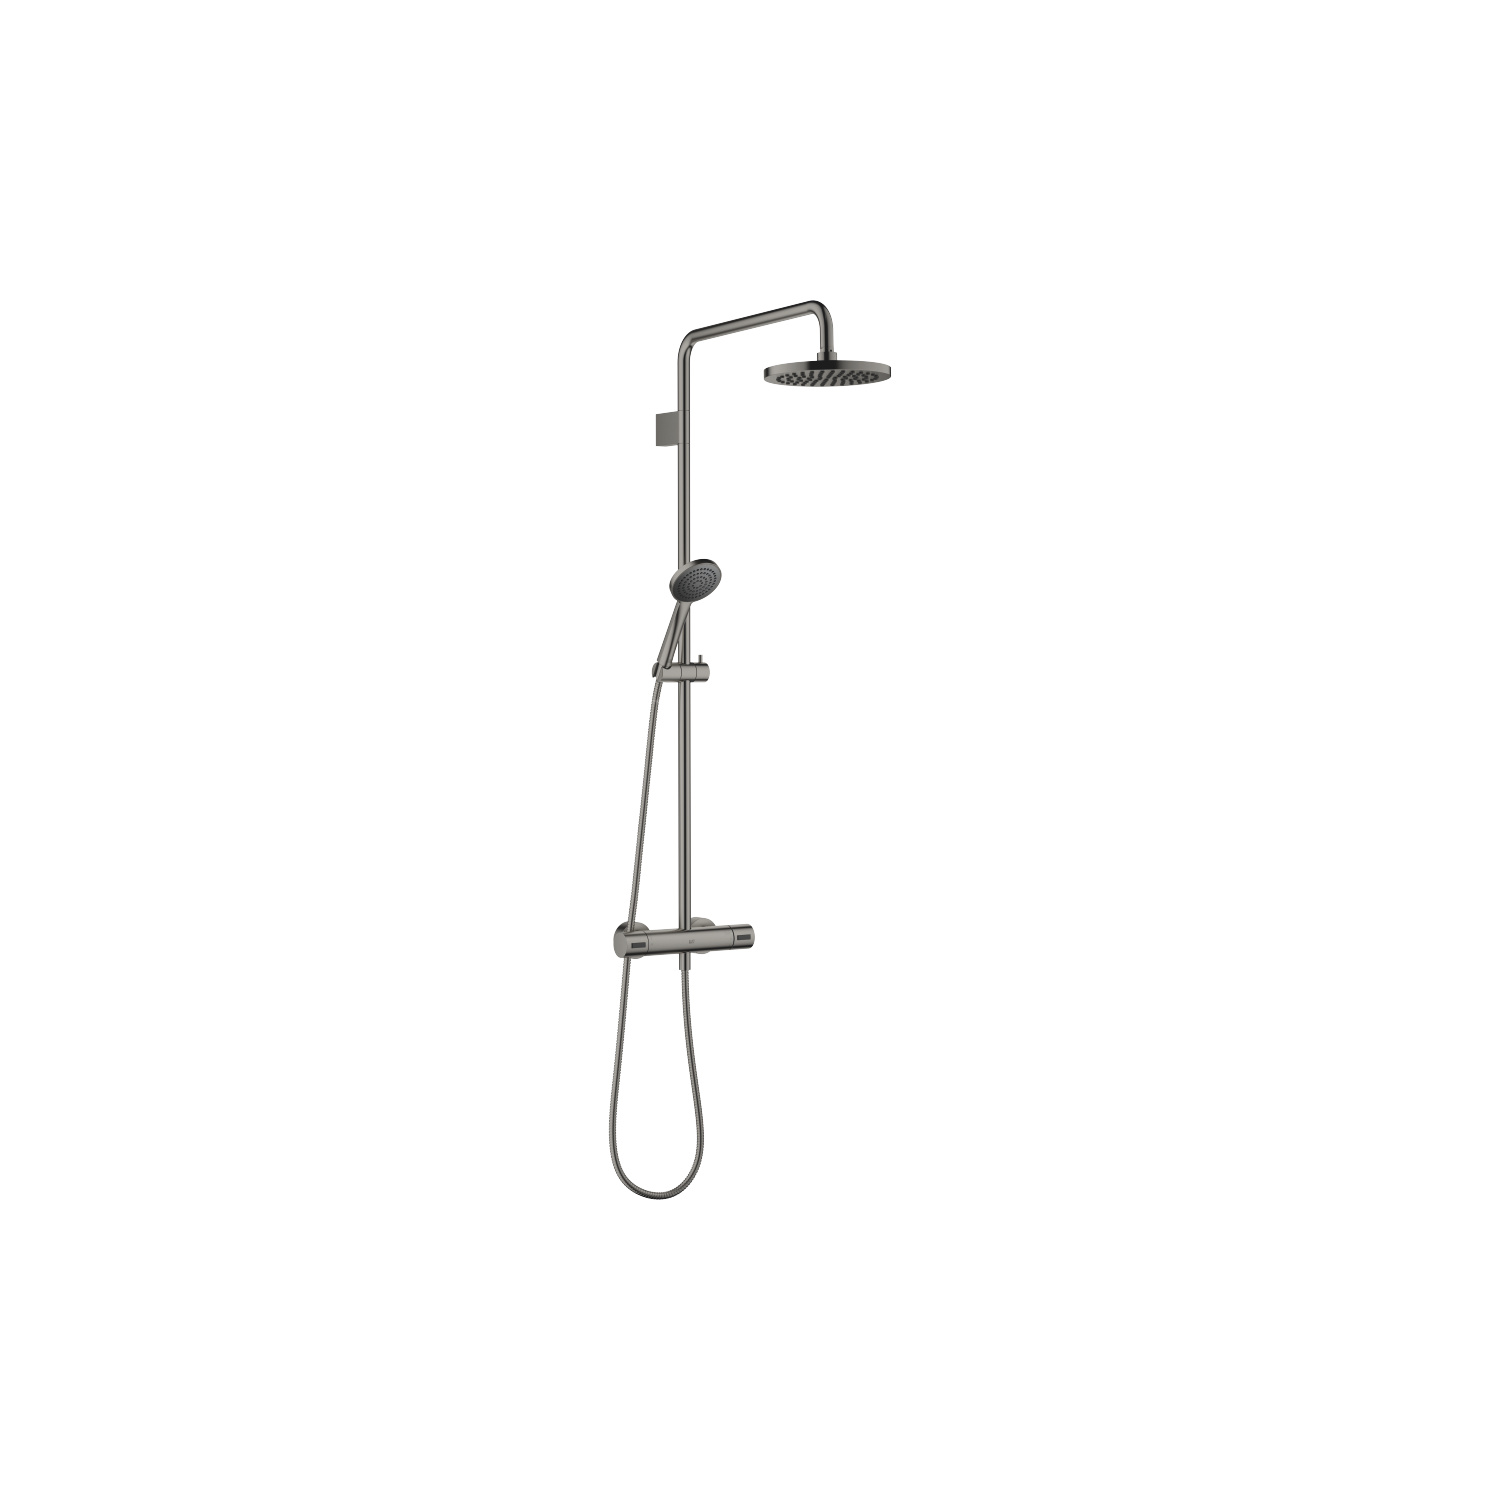 Exposed shower set with shower thermostat - platinum